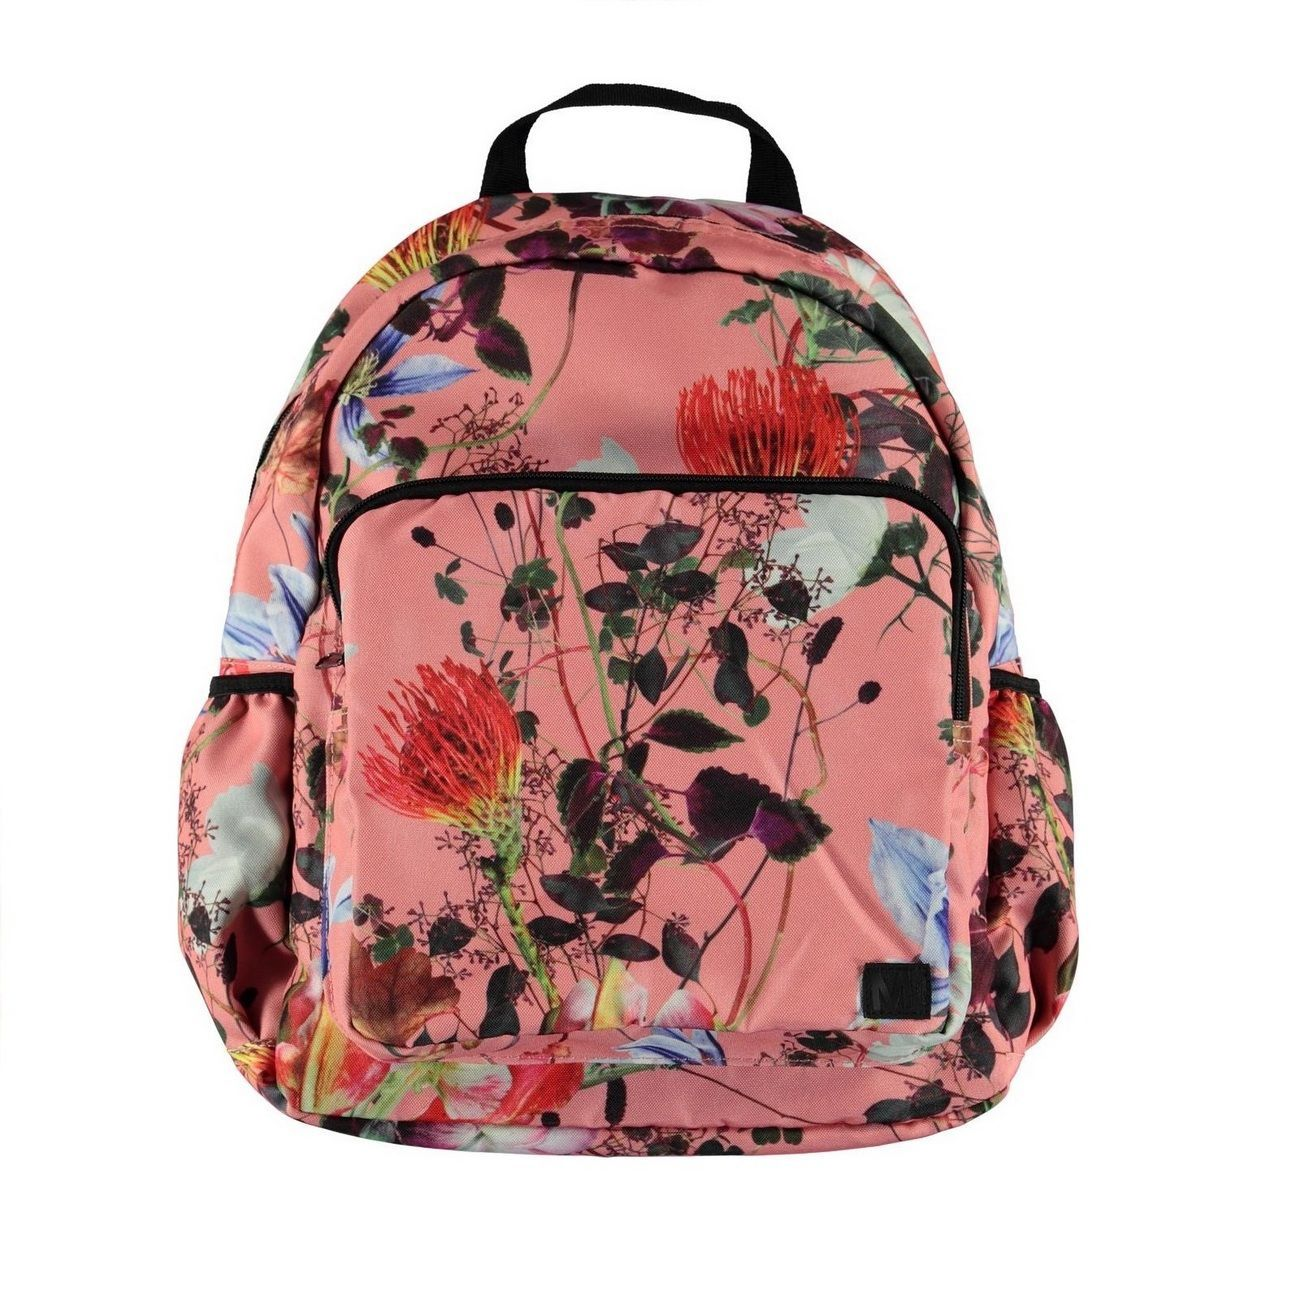 Molo Big backpack Flowers of the World